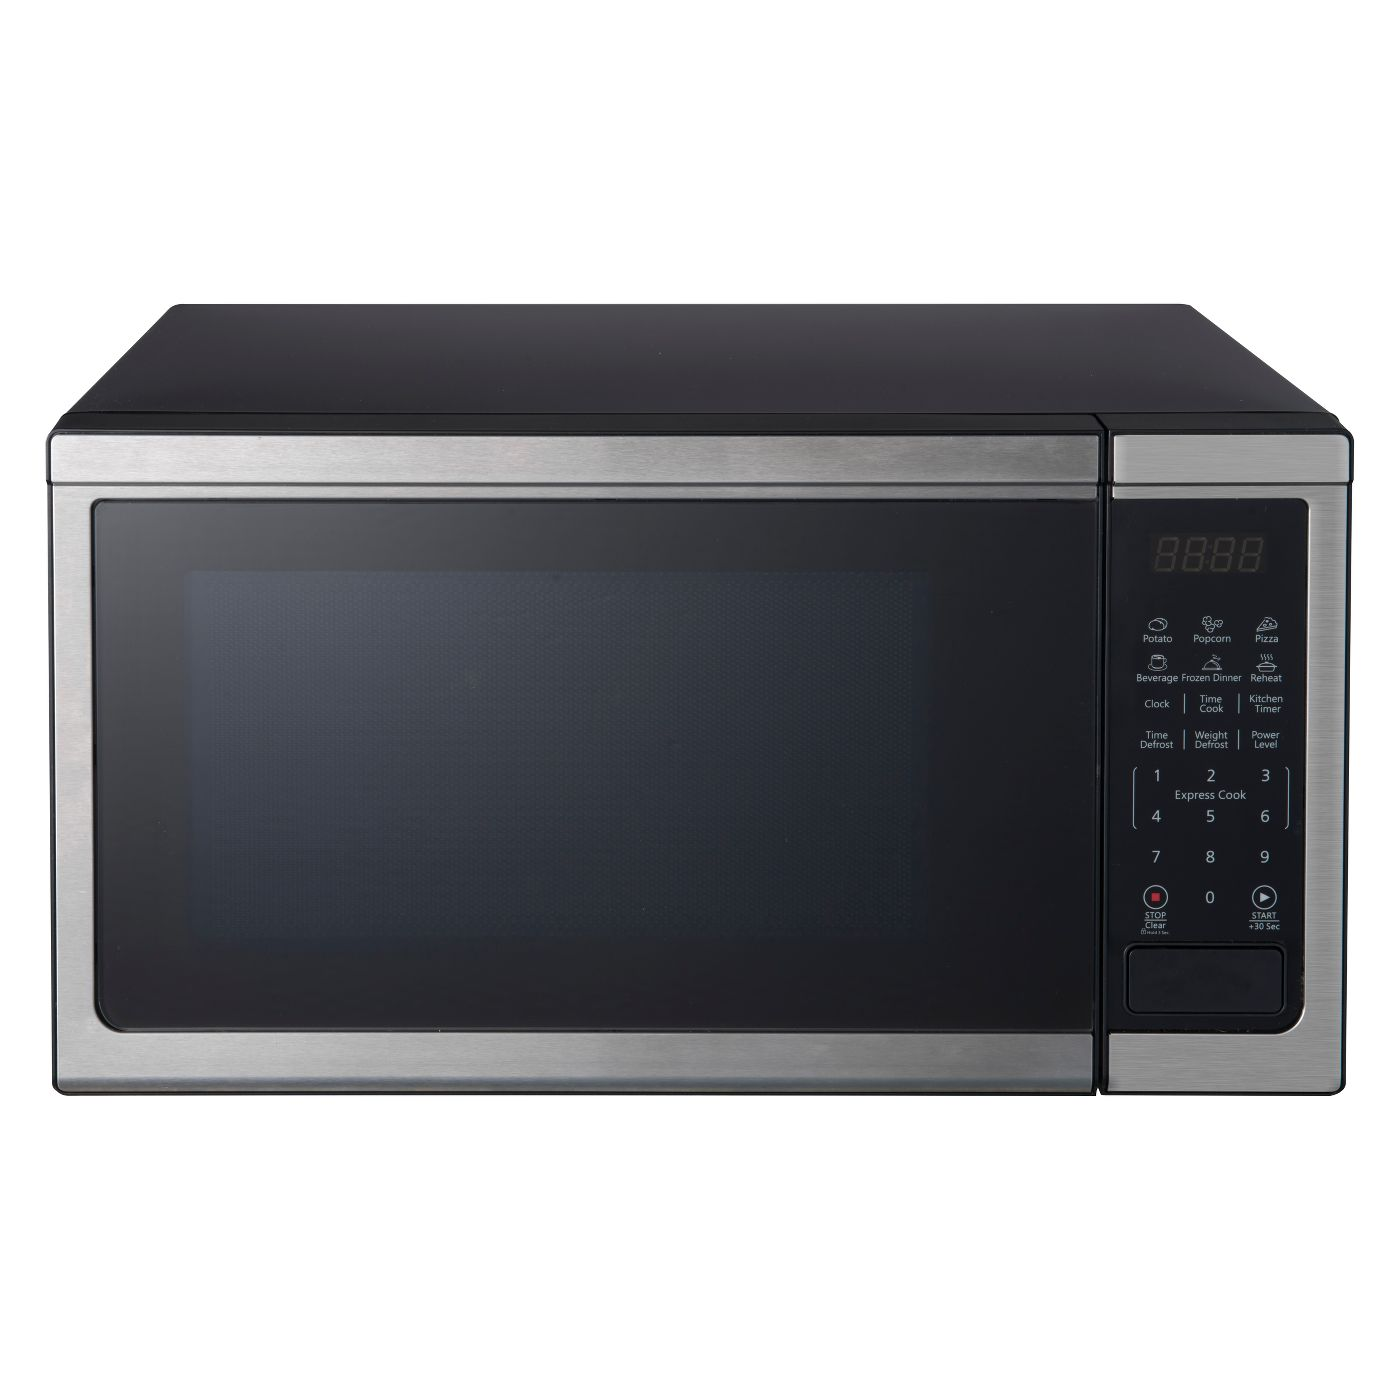 Oster OGSMJ411S2-10 1.1cu ft 1000W Stainless Steel Microwave